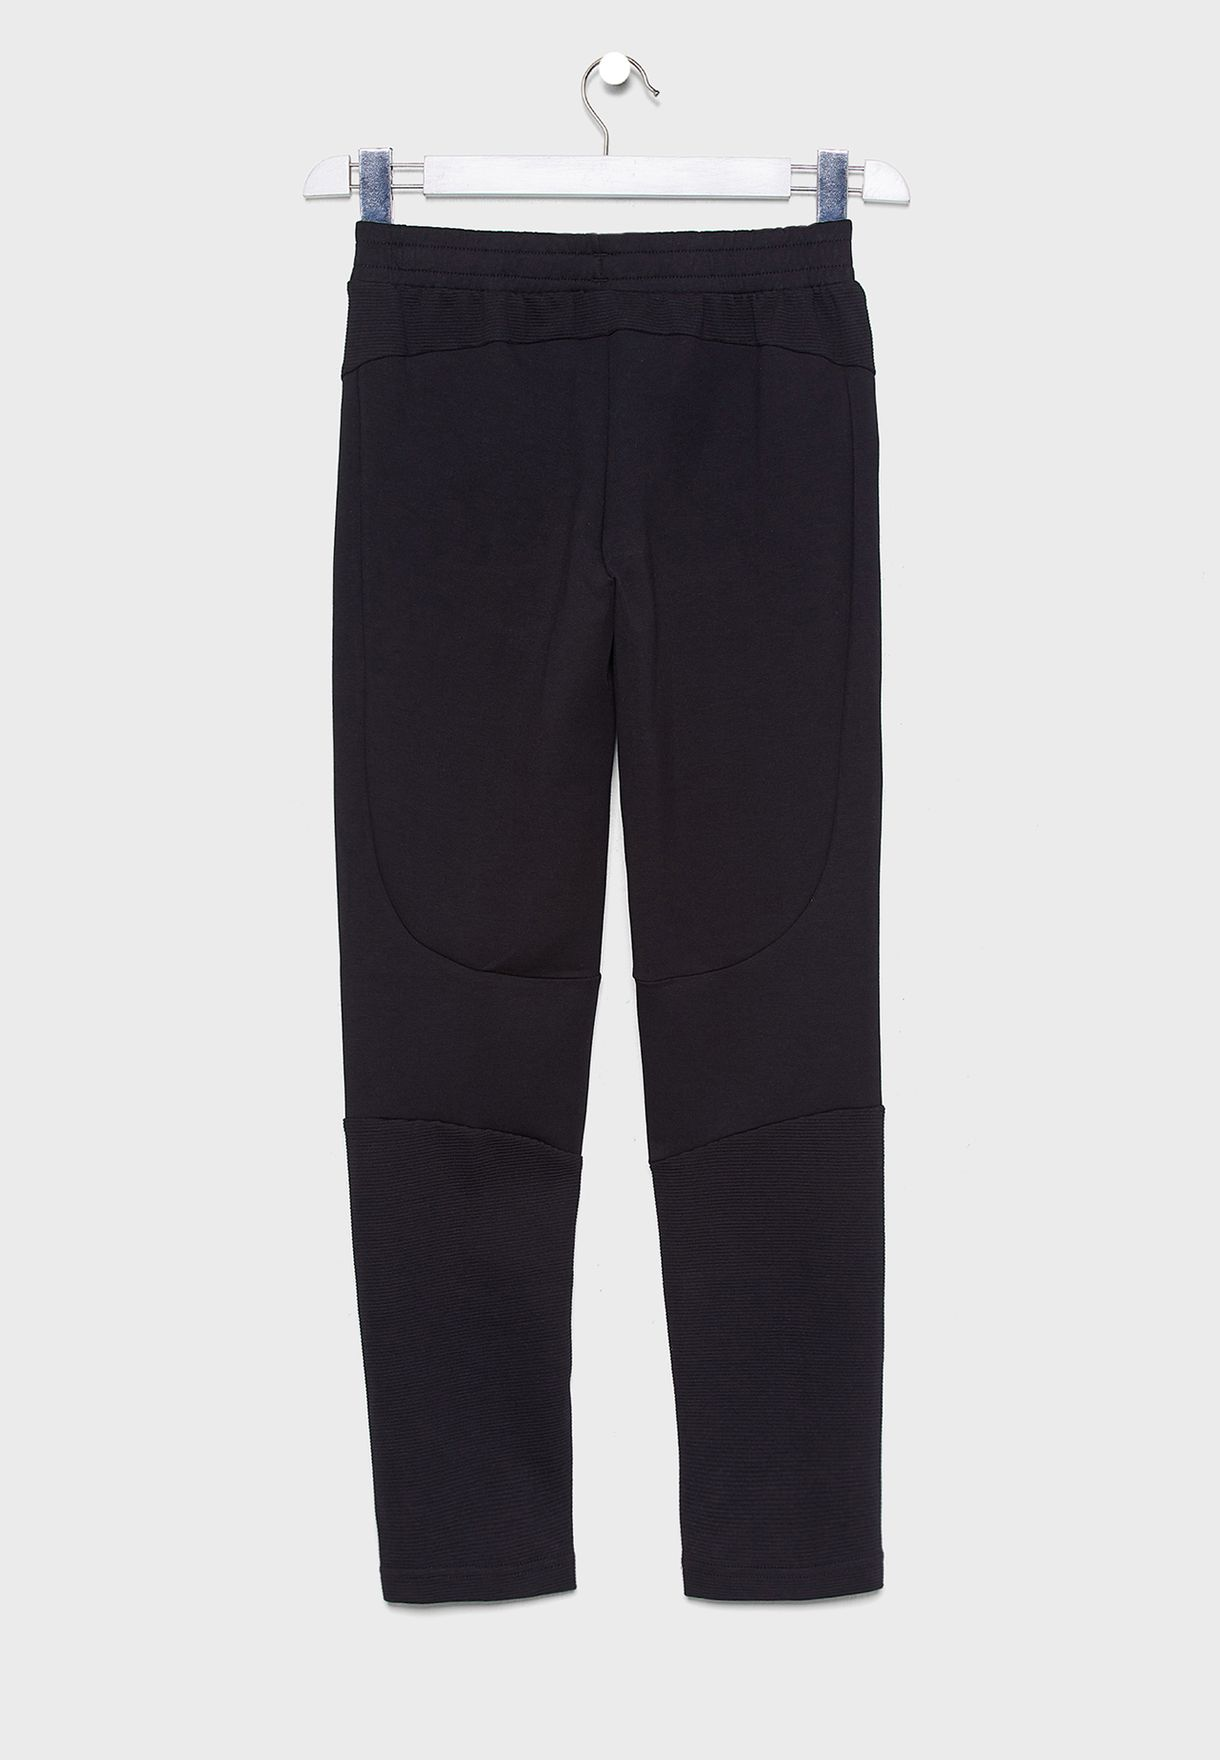 Kids Evostripe Sweatpants